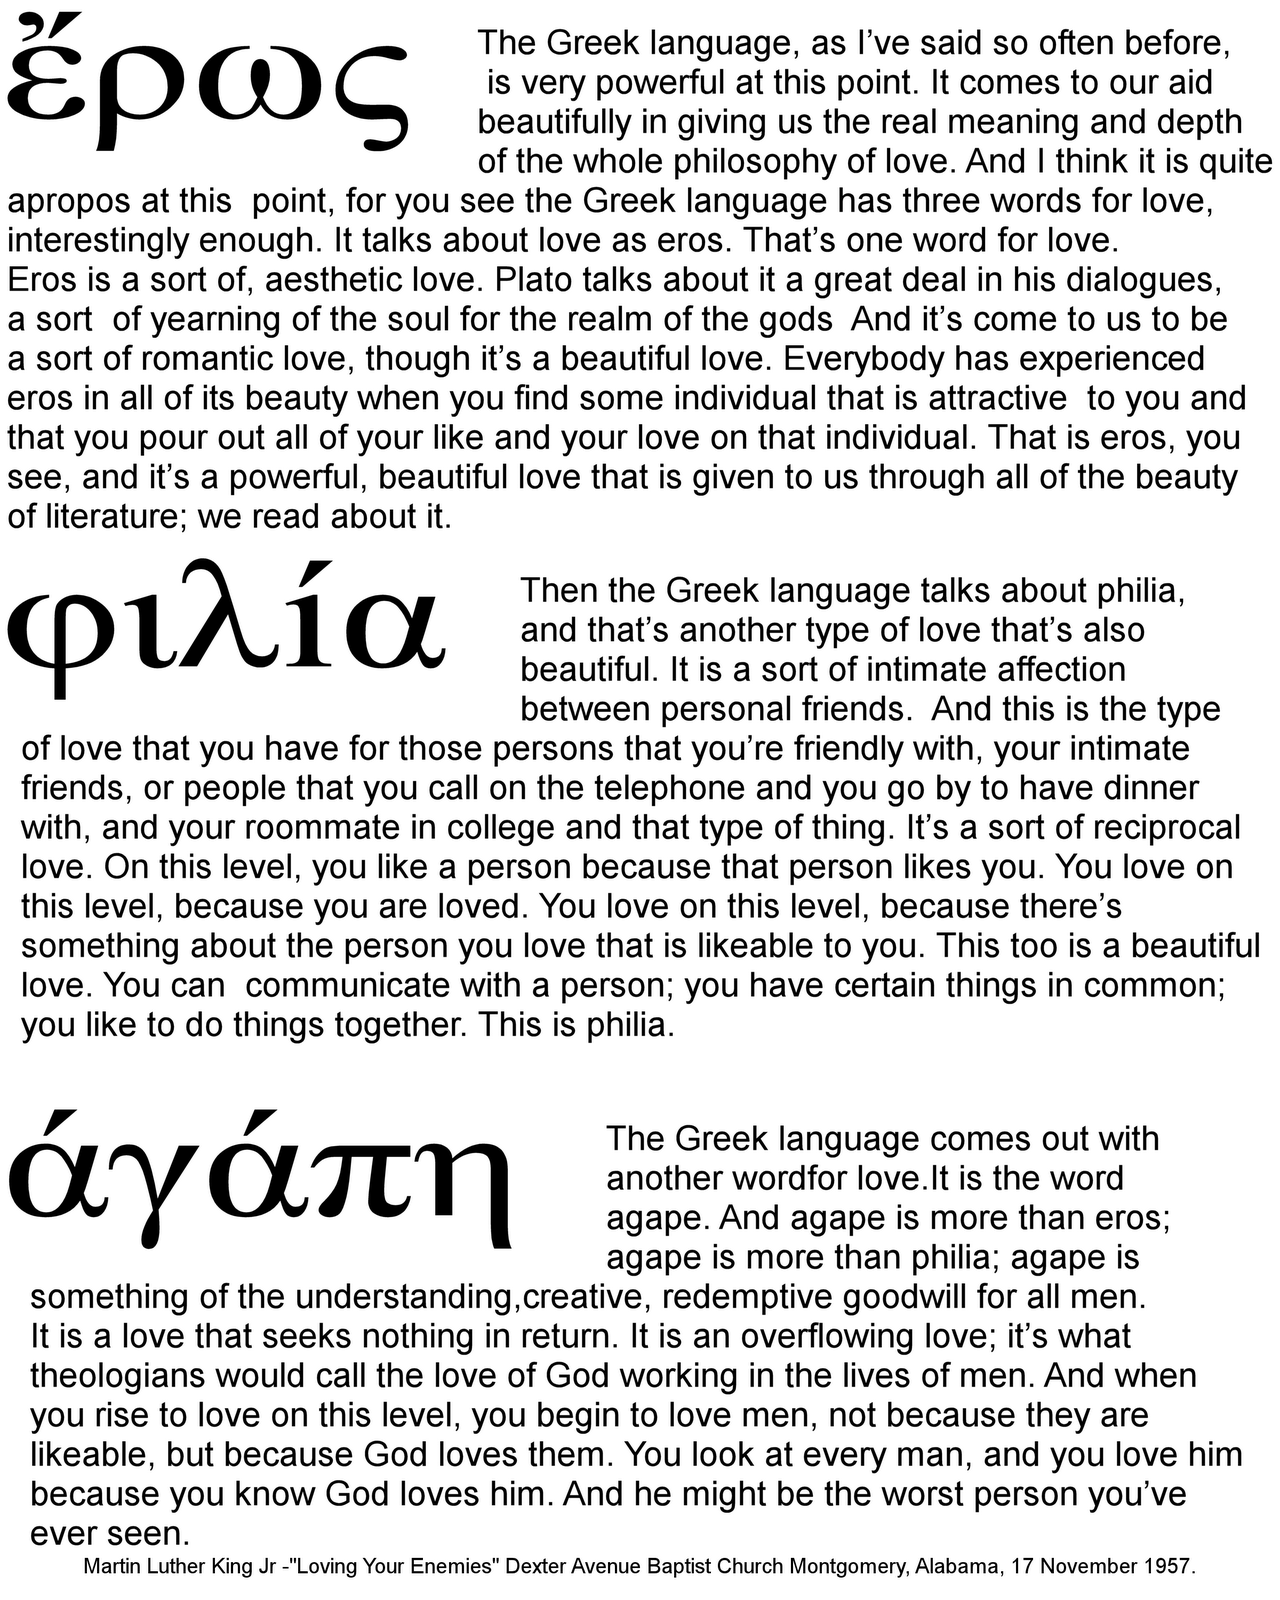 the true meaning of euthanasia from ancient greek language Example: +greek +(legend myth) -zeus will match greek names of myths or legends not about zeus expand search to ancestral names: meanings for names further up the family tree will be included in the search ancient greek from a greek word meaning innocent.